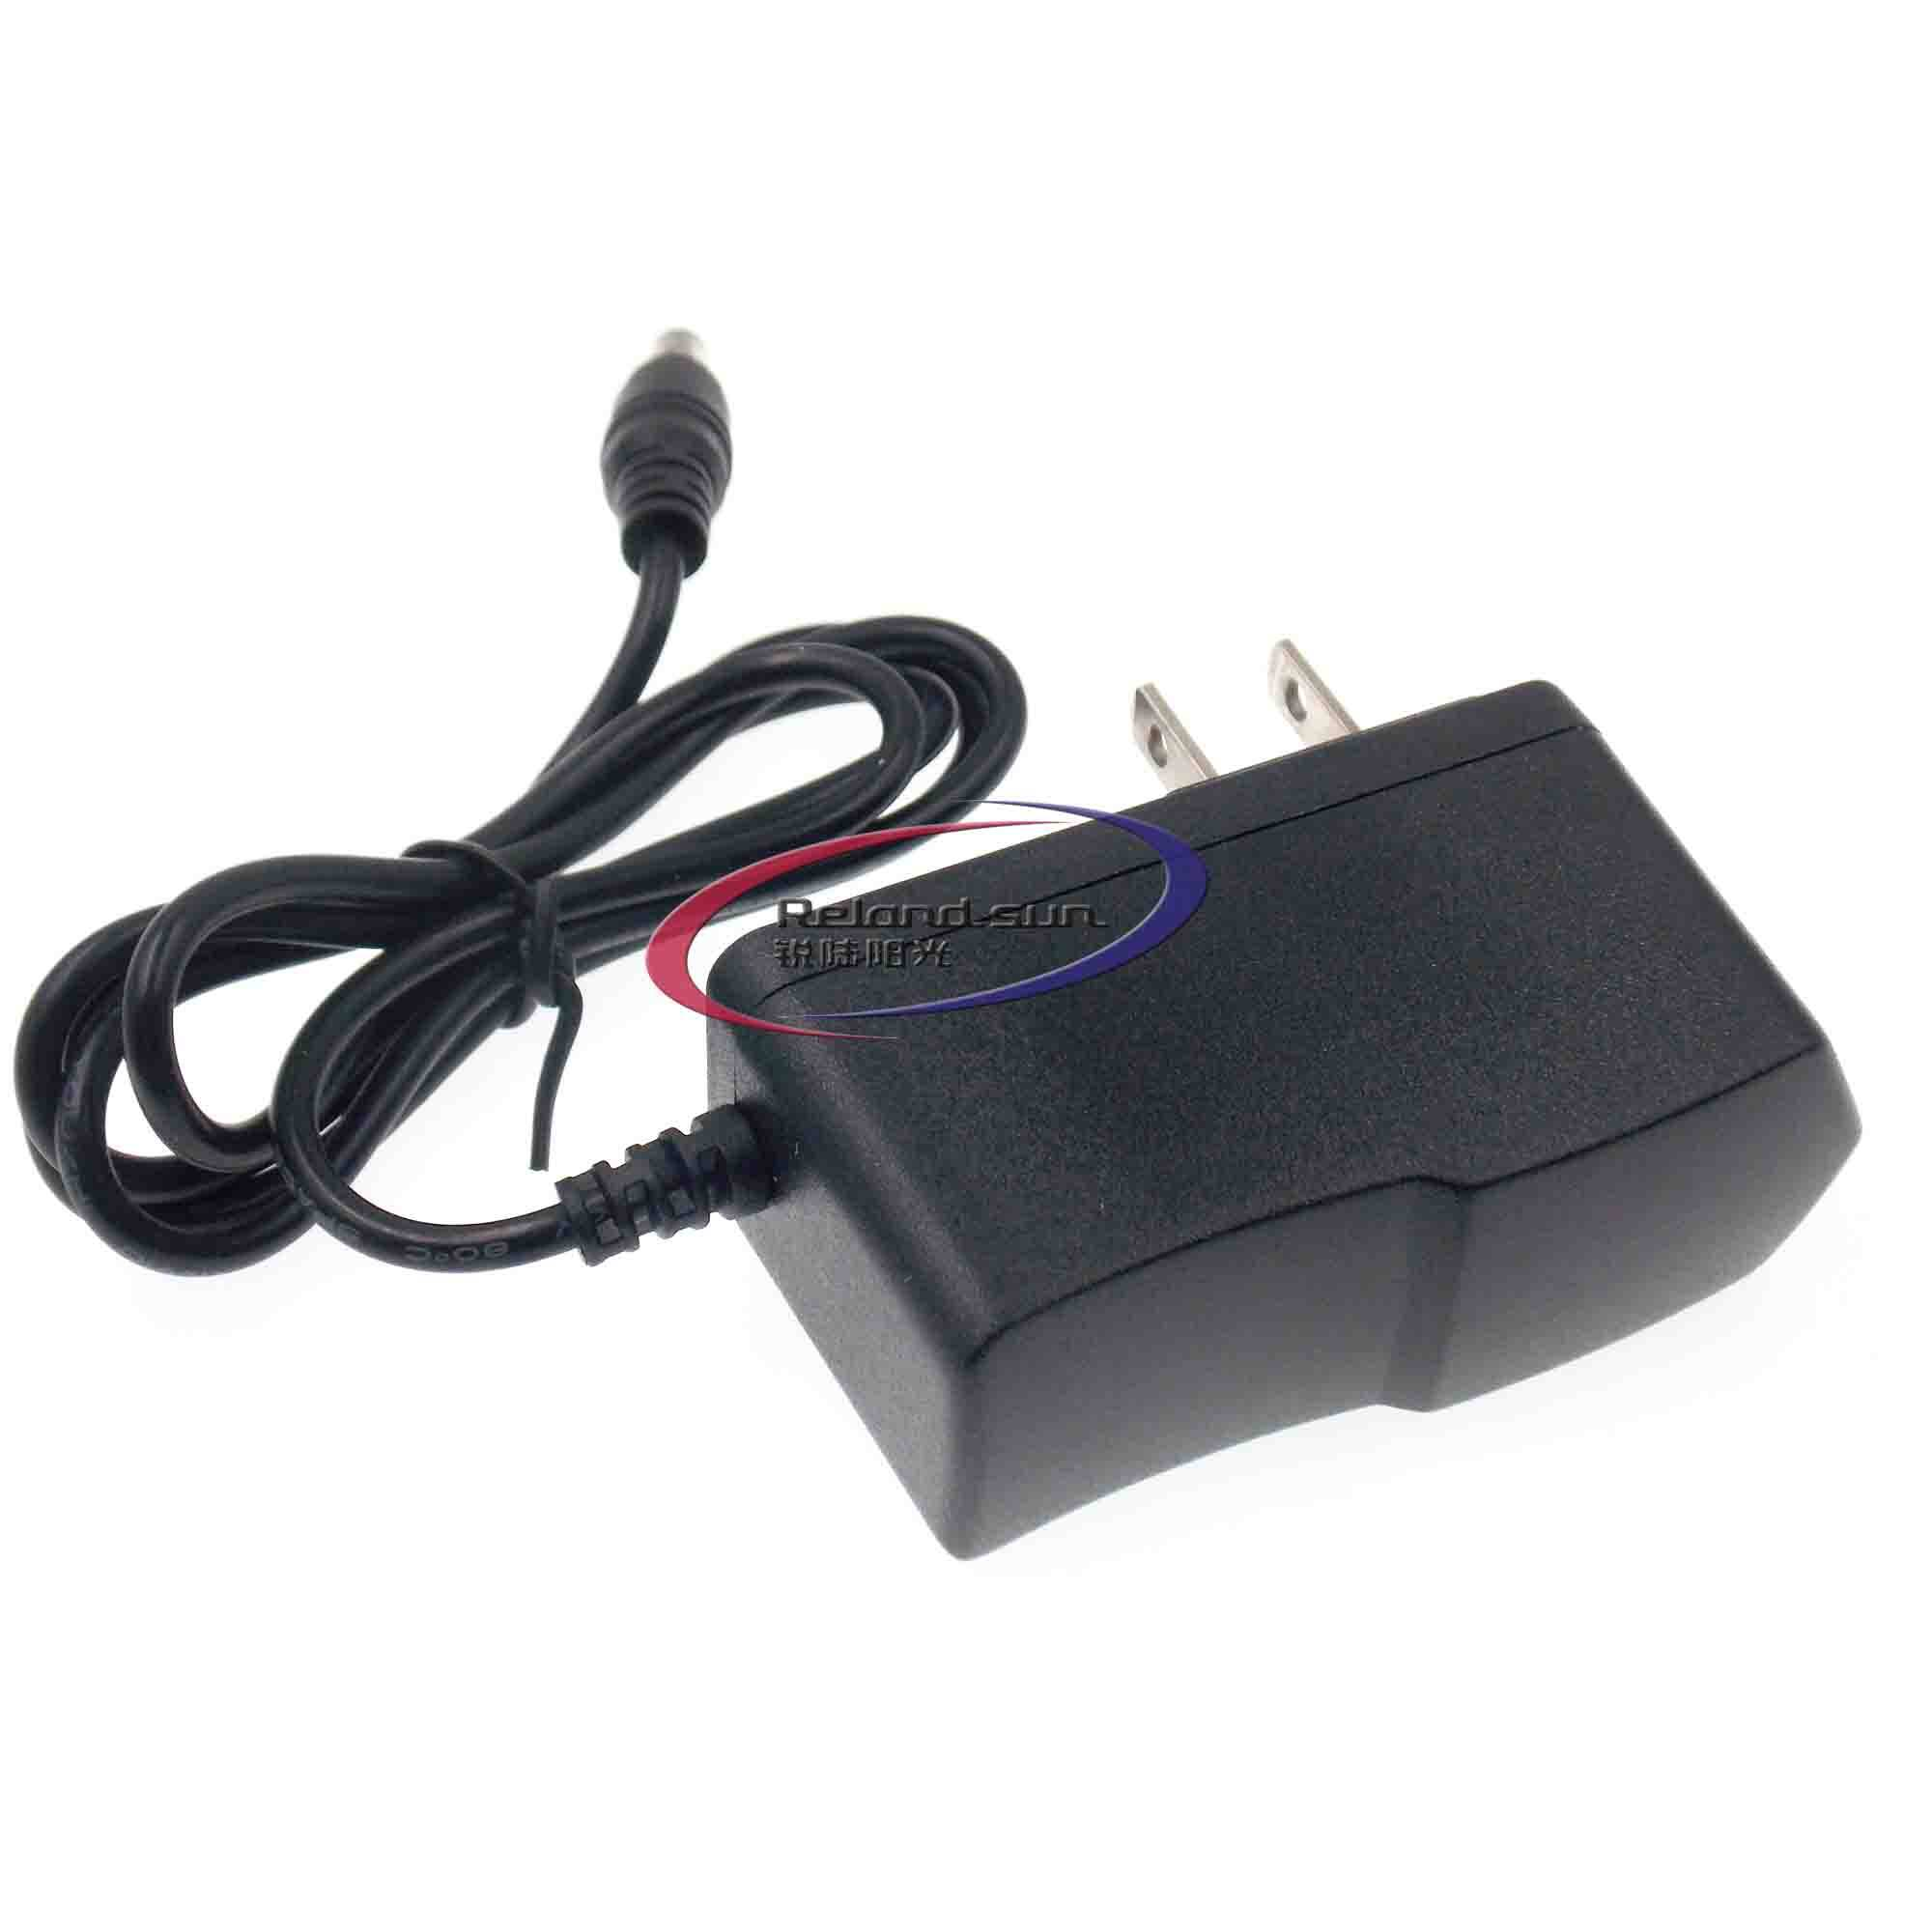 AC100-240V to DC 12V 9V 5V 4.5V 1A 2A 5A Power Supply Adapter Converter Charger